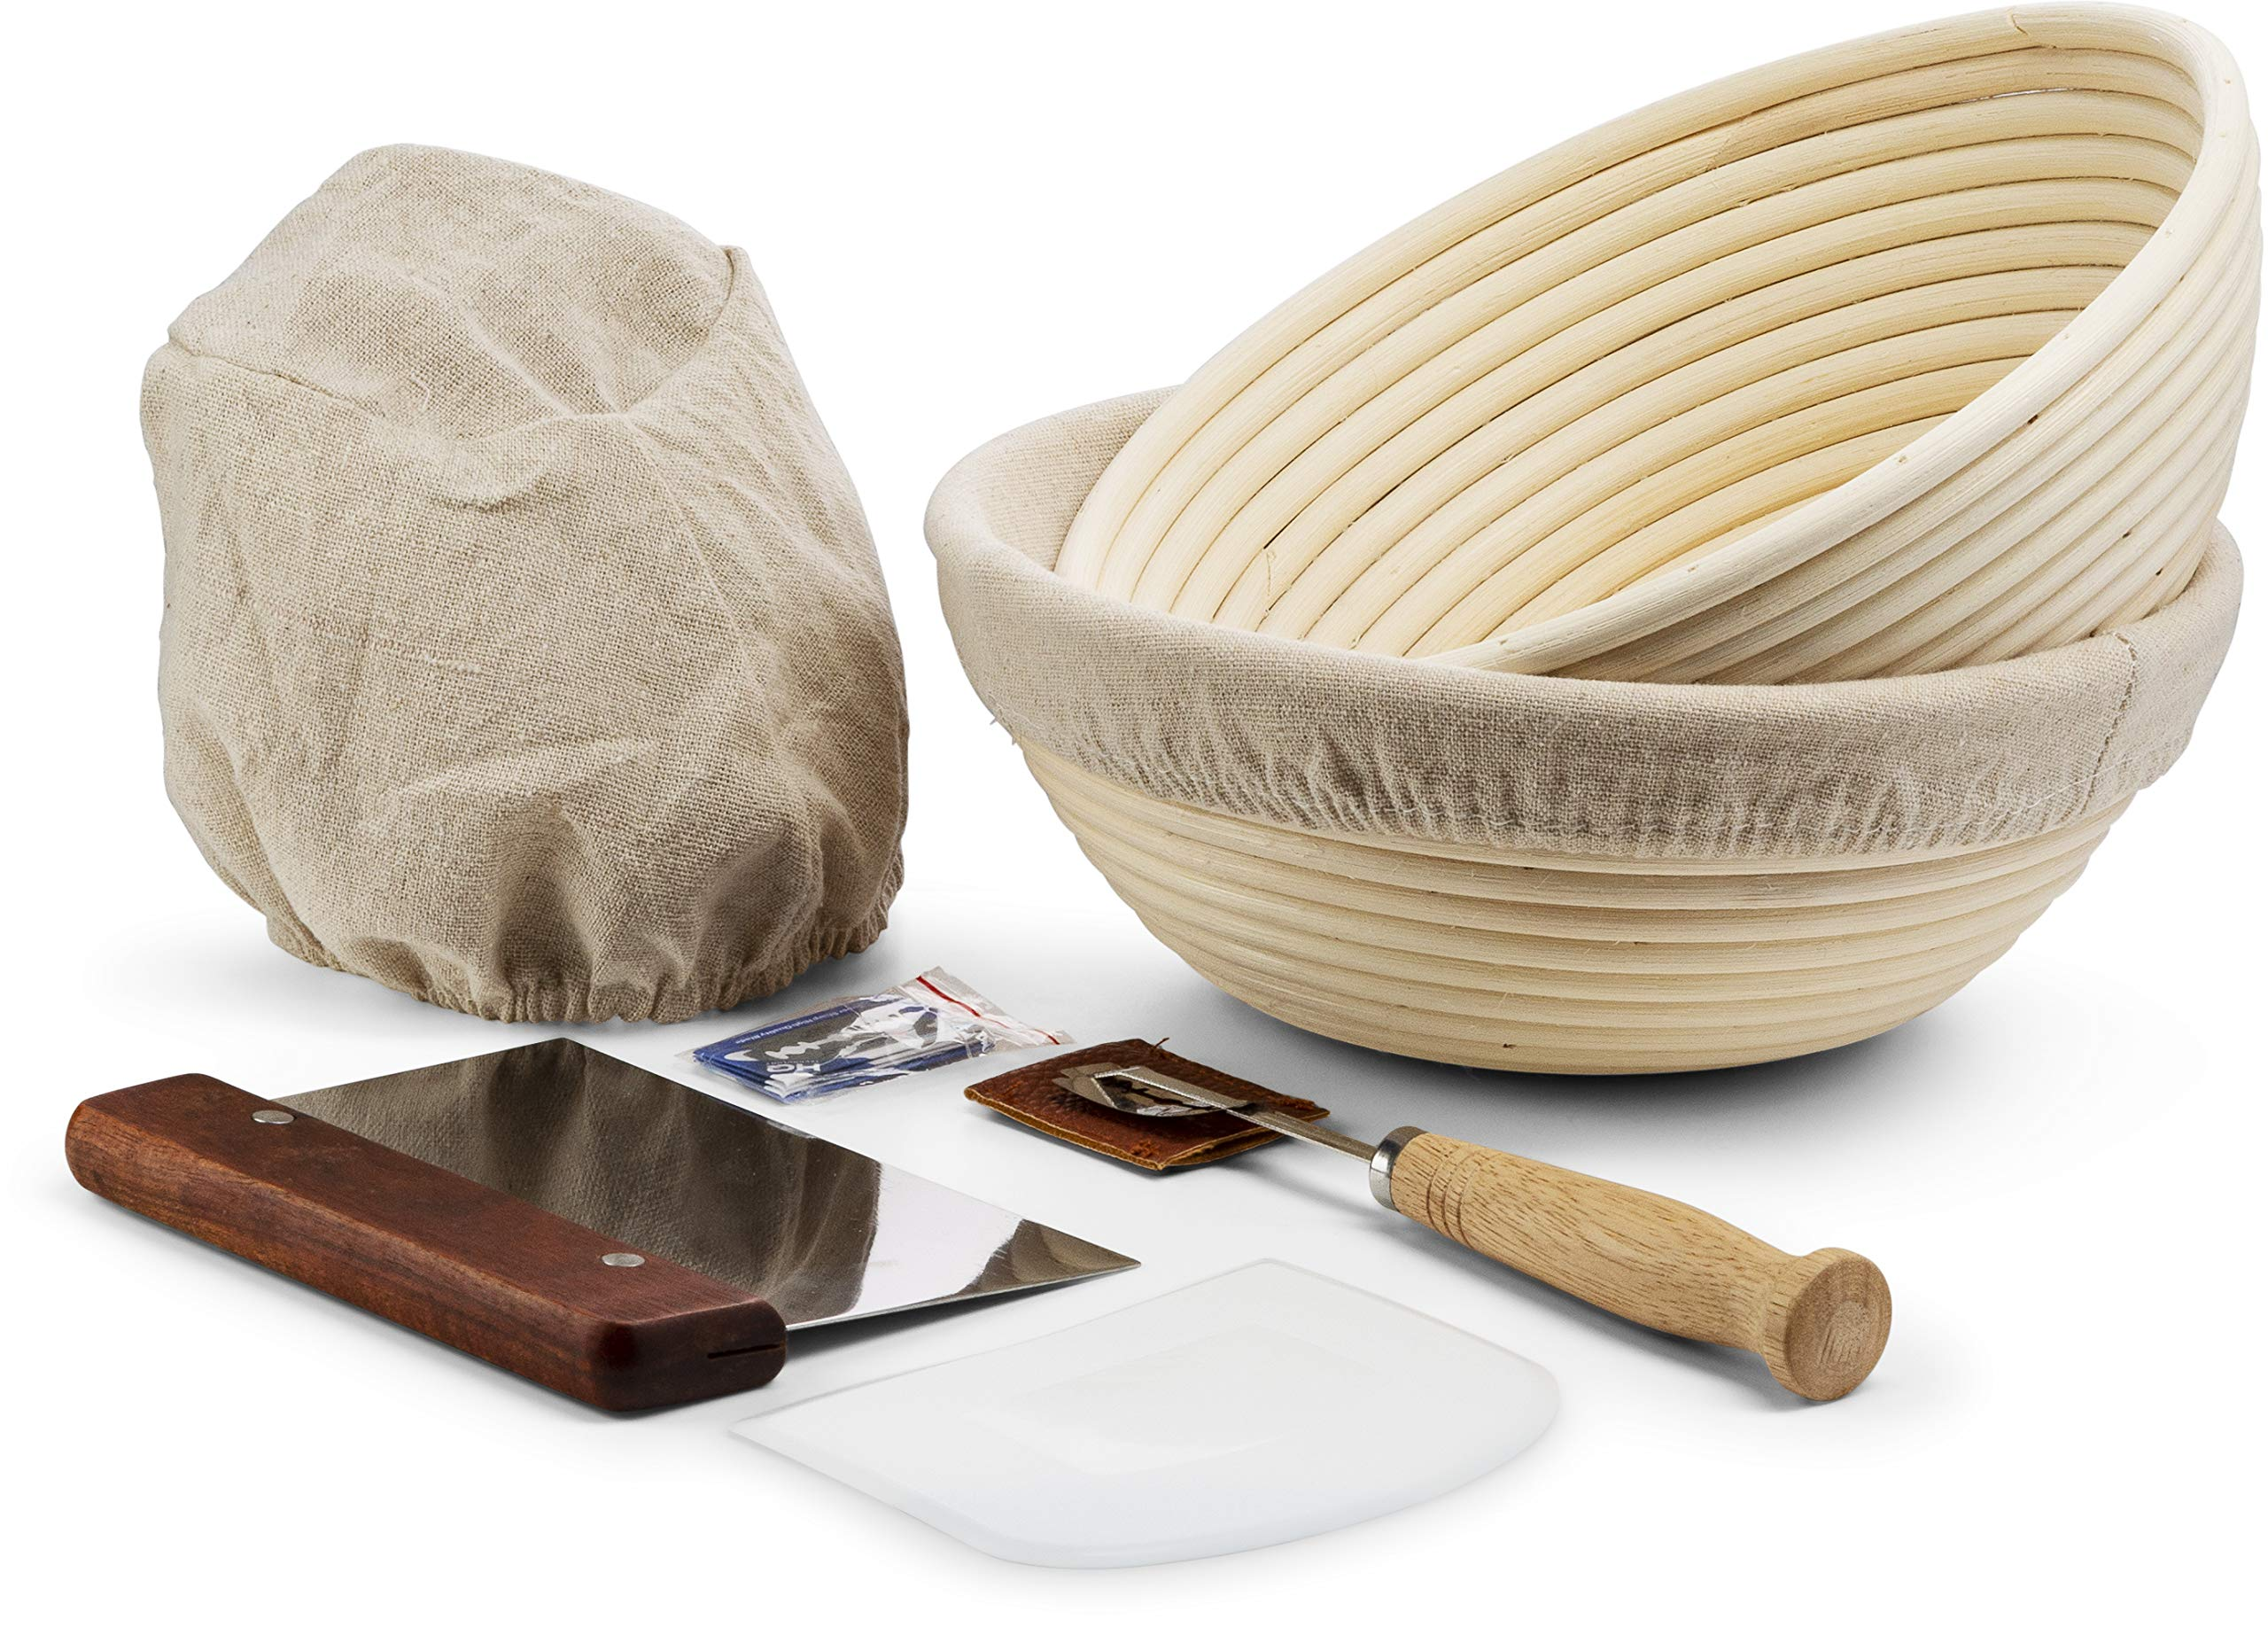 Banneton Proofing Basket, Set of 2, by KooK, Perfect for Sourdough, Includes Metal Dough Scraper, Plastic Scraper, Scoring Lame and Case, Extra Blades by KooK